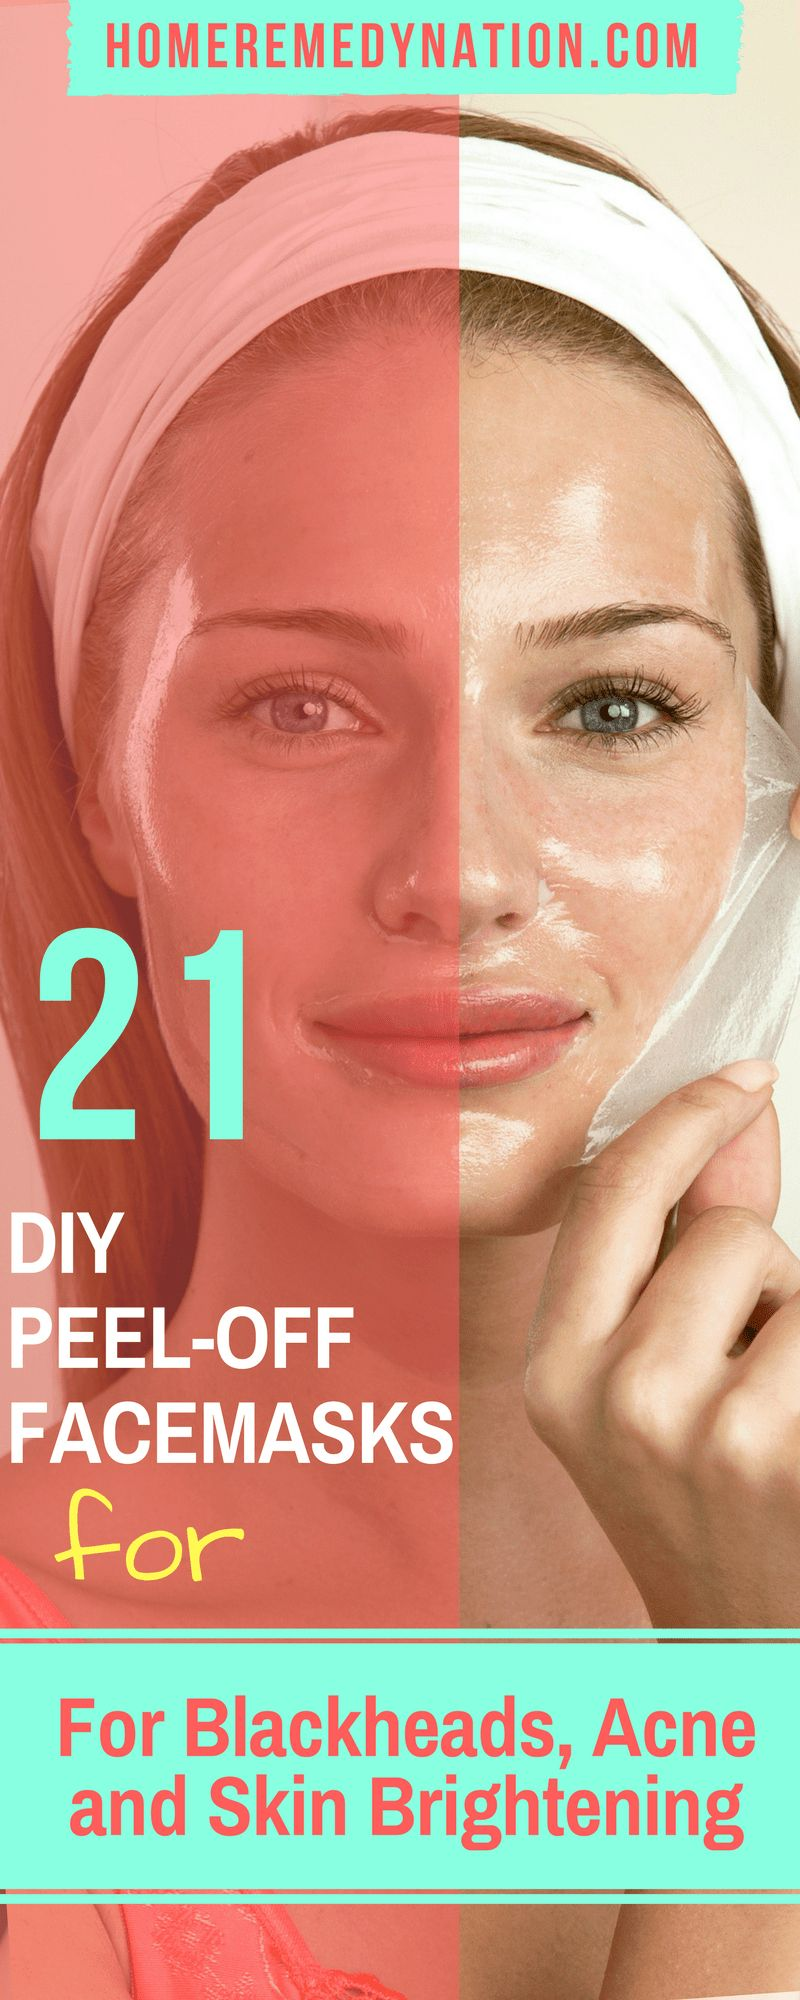 21 DIY Peel Off Face Masks For Blackheads, Acne and Skin